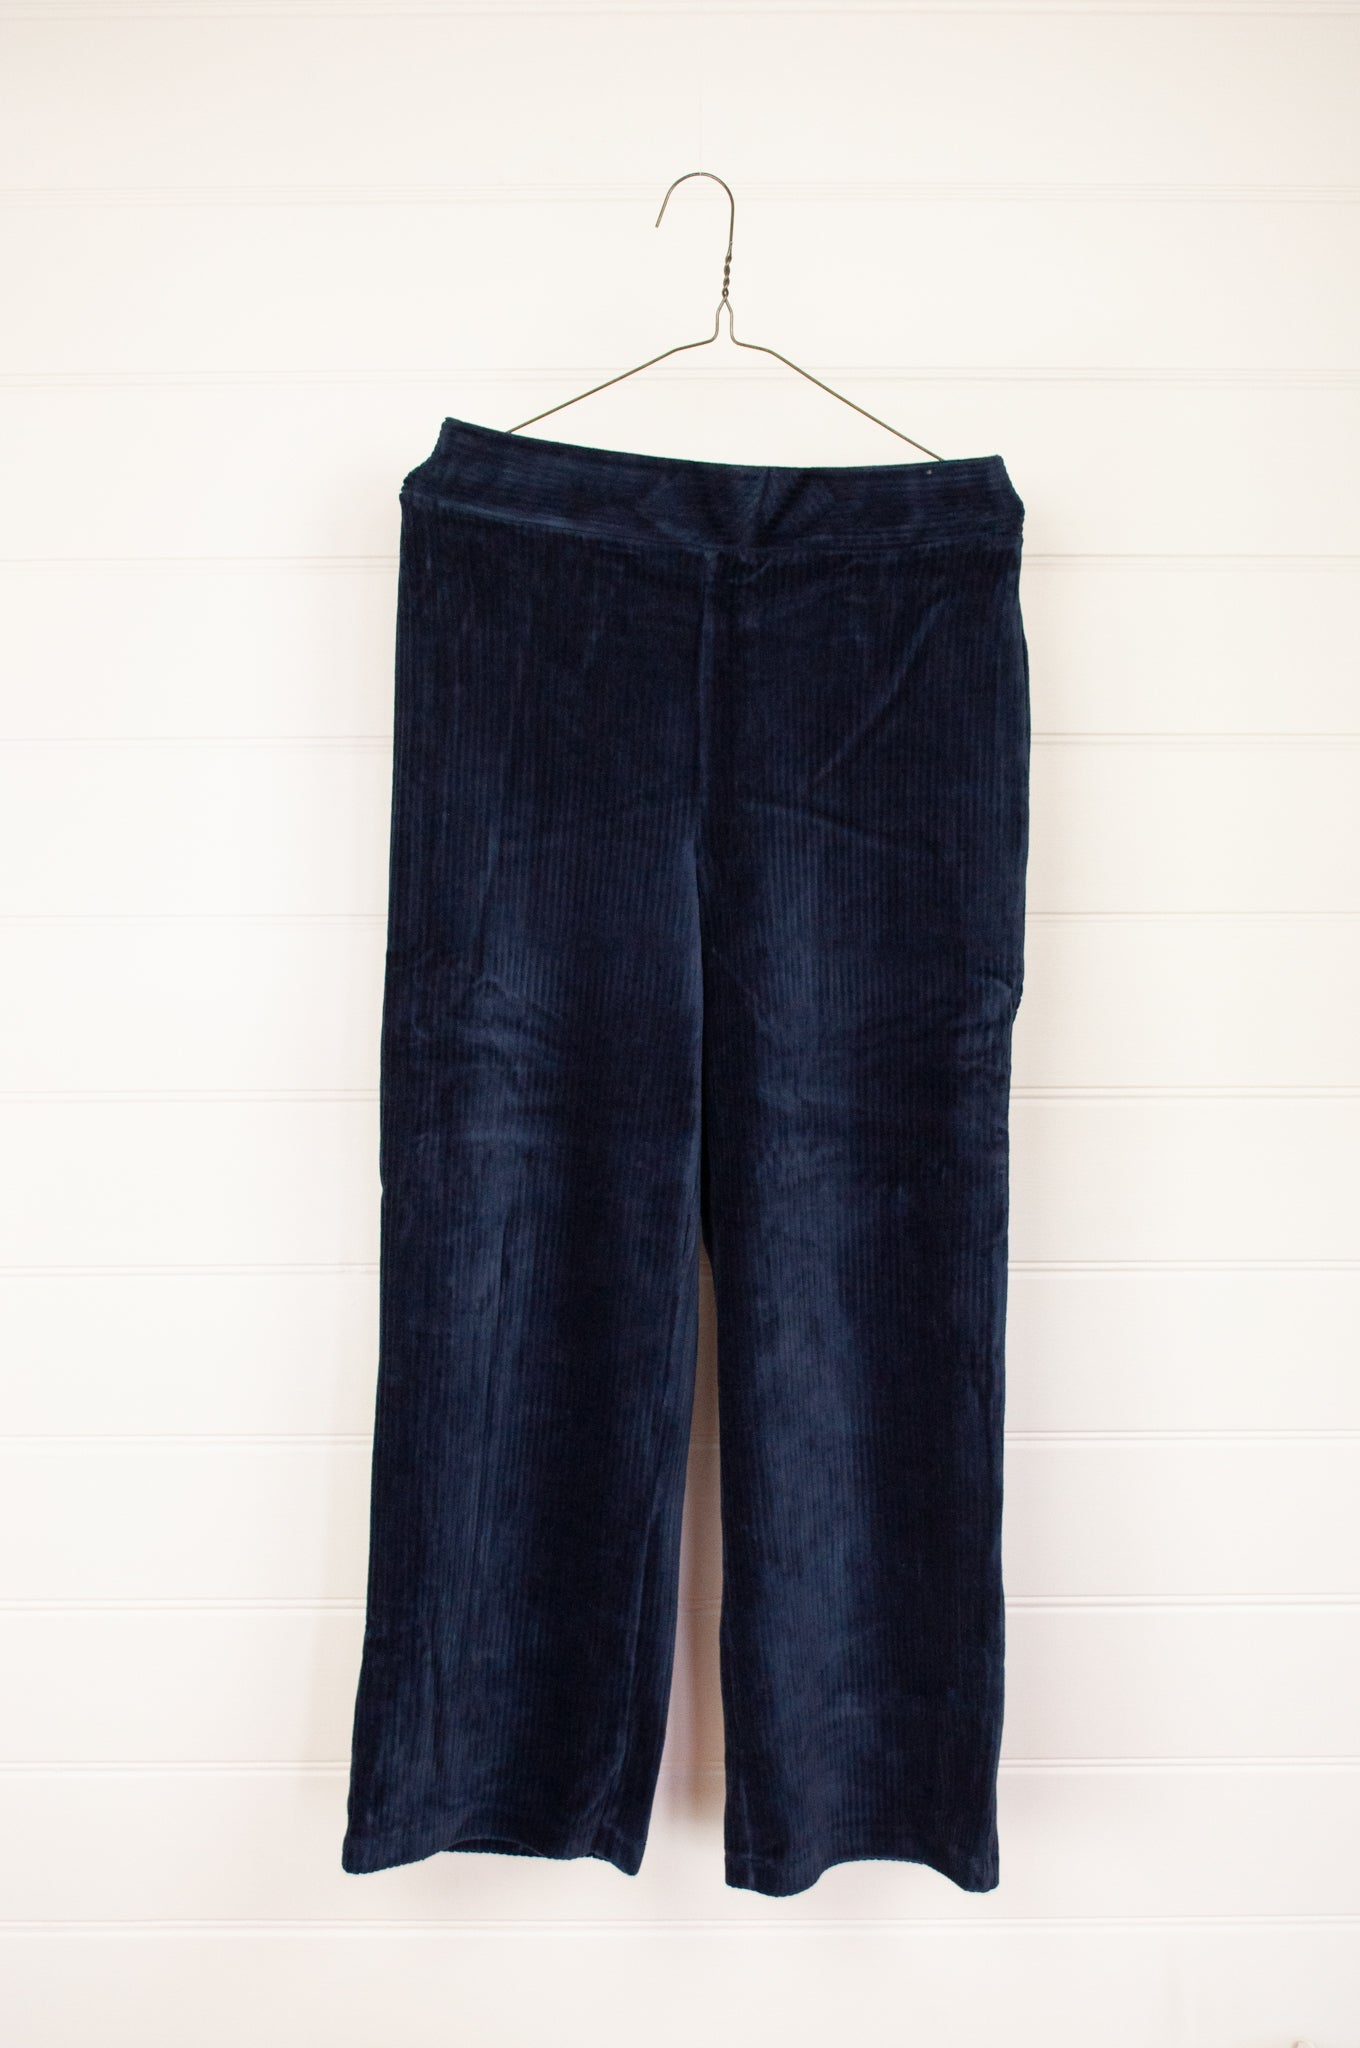 Nice Things by Paloma S designed in Barcelona Spain classic navy wideleg stretch corduroy pants.